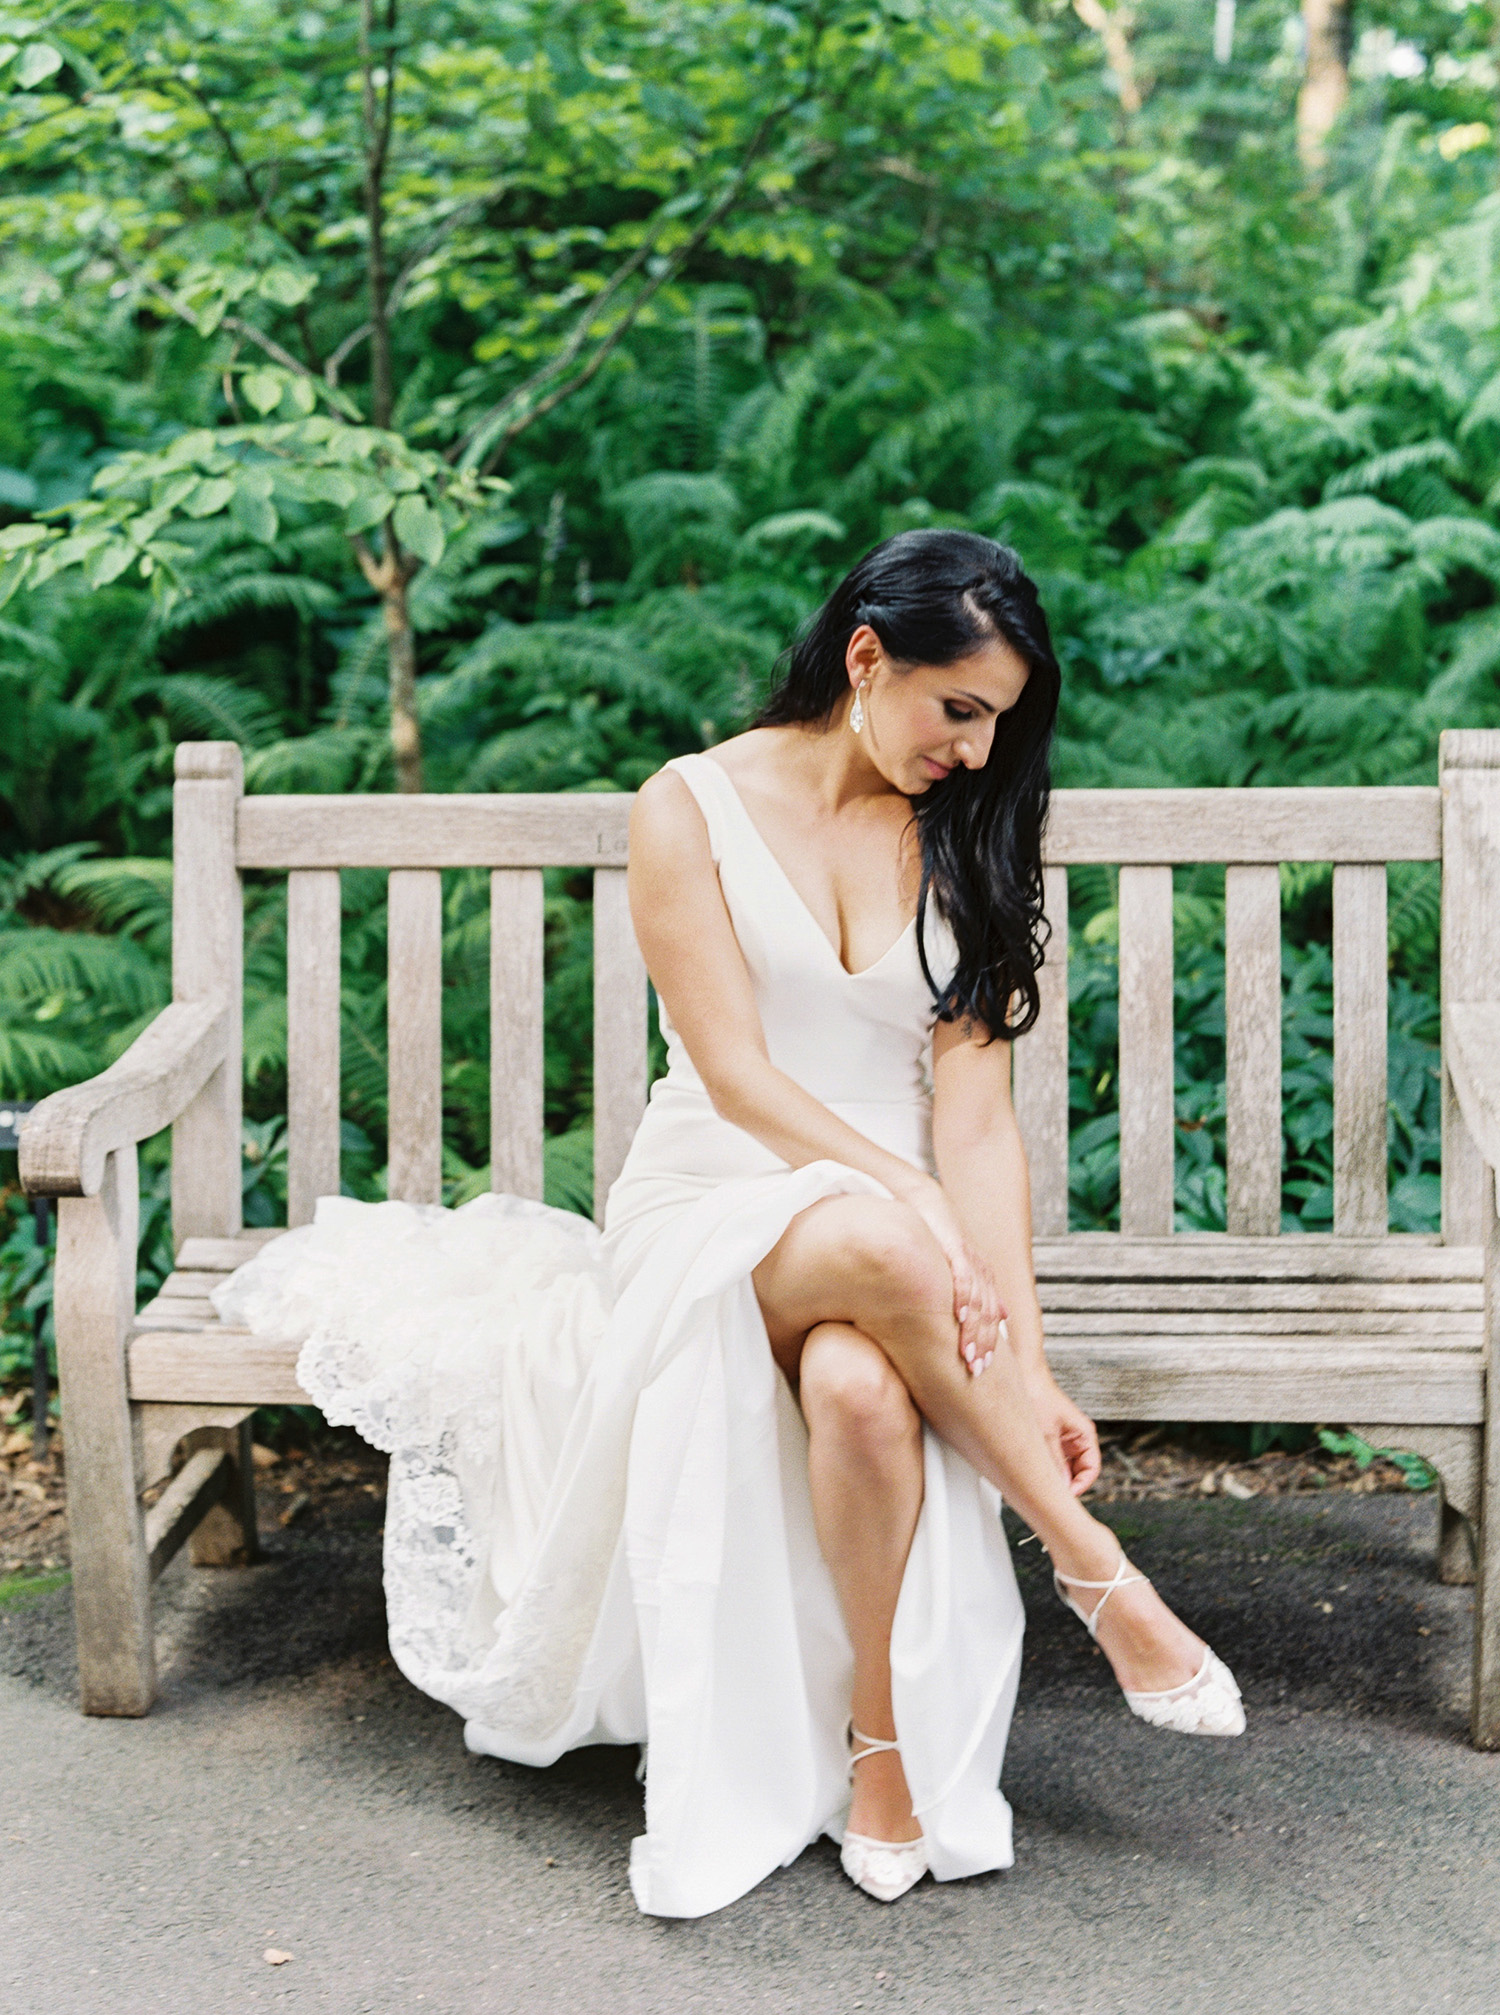 noel mike wedding bride sitting on bench with shoes